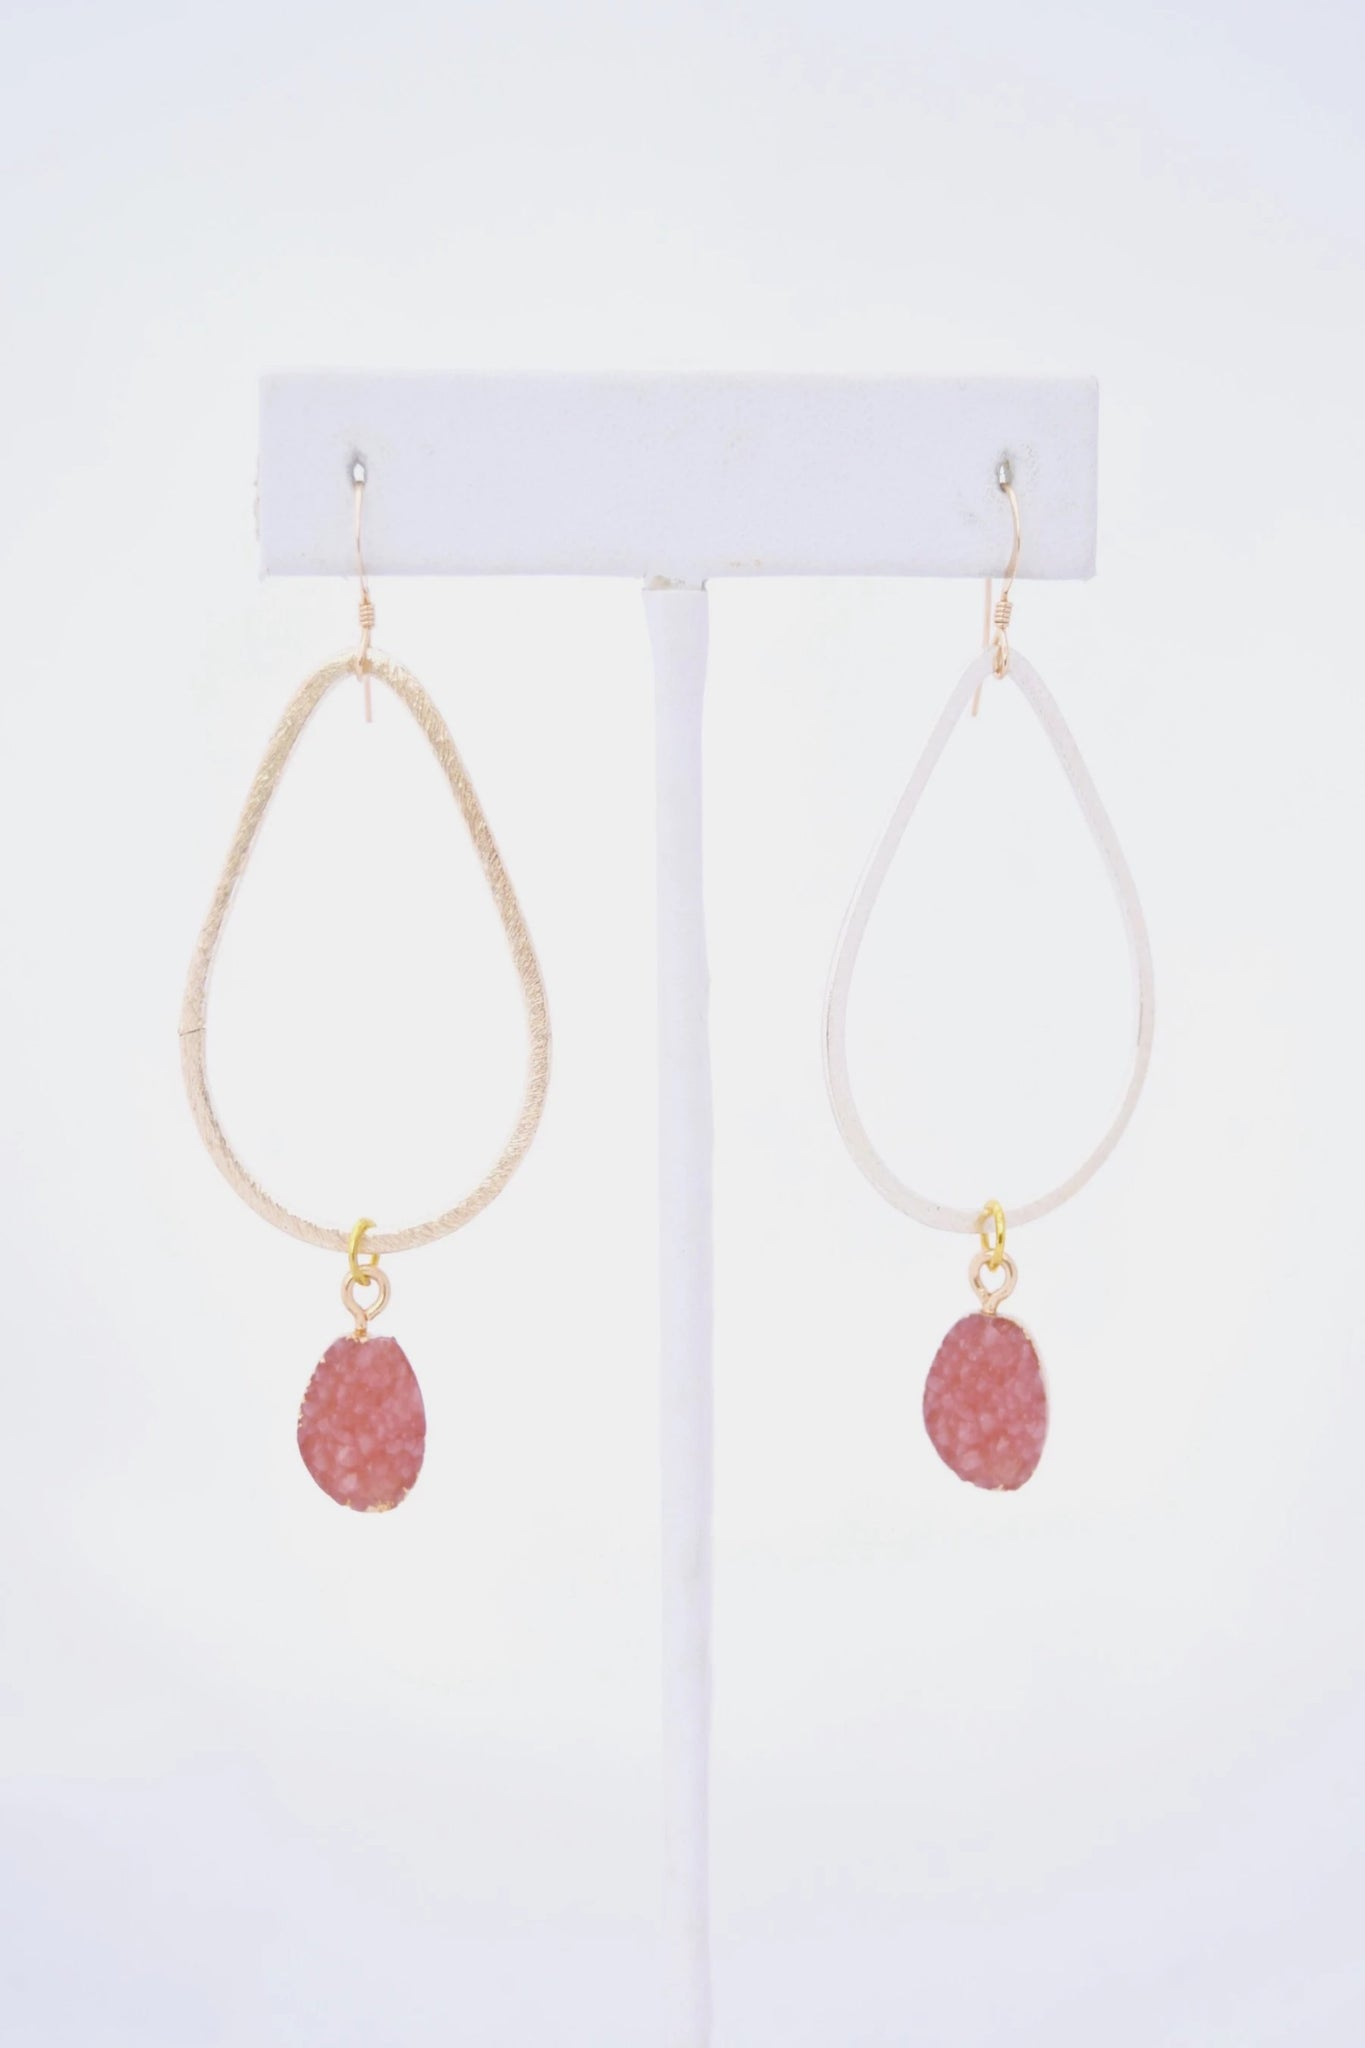 Kaleigh Gold Teardrop Earring with Pink Druzy Pendant